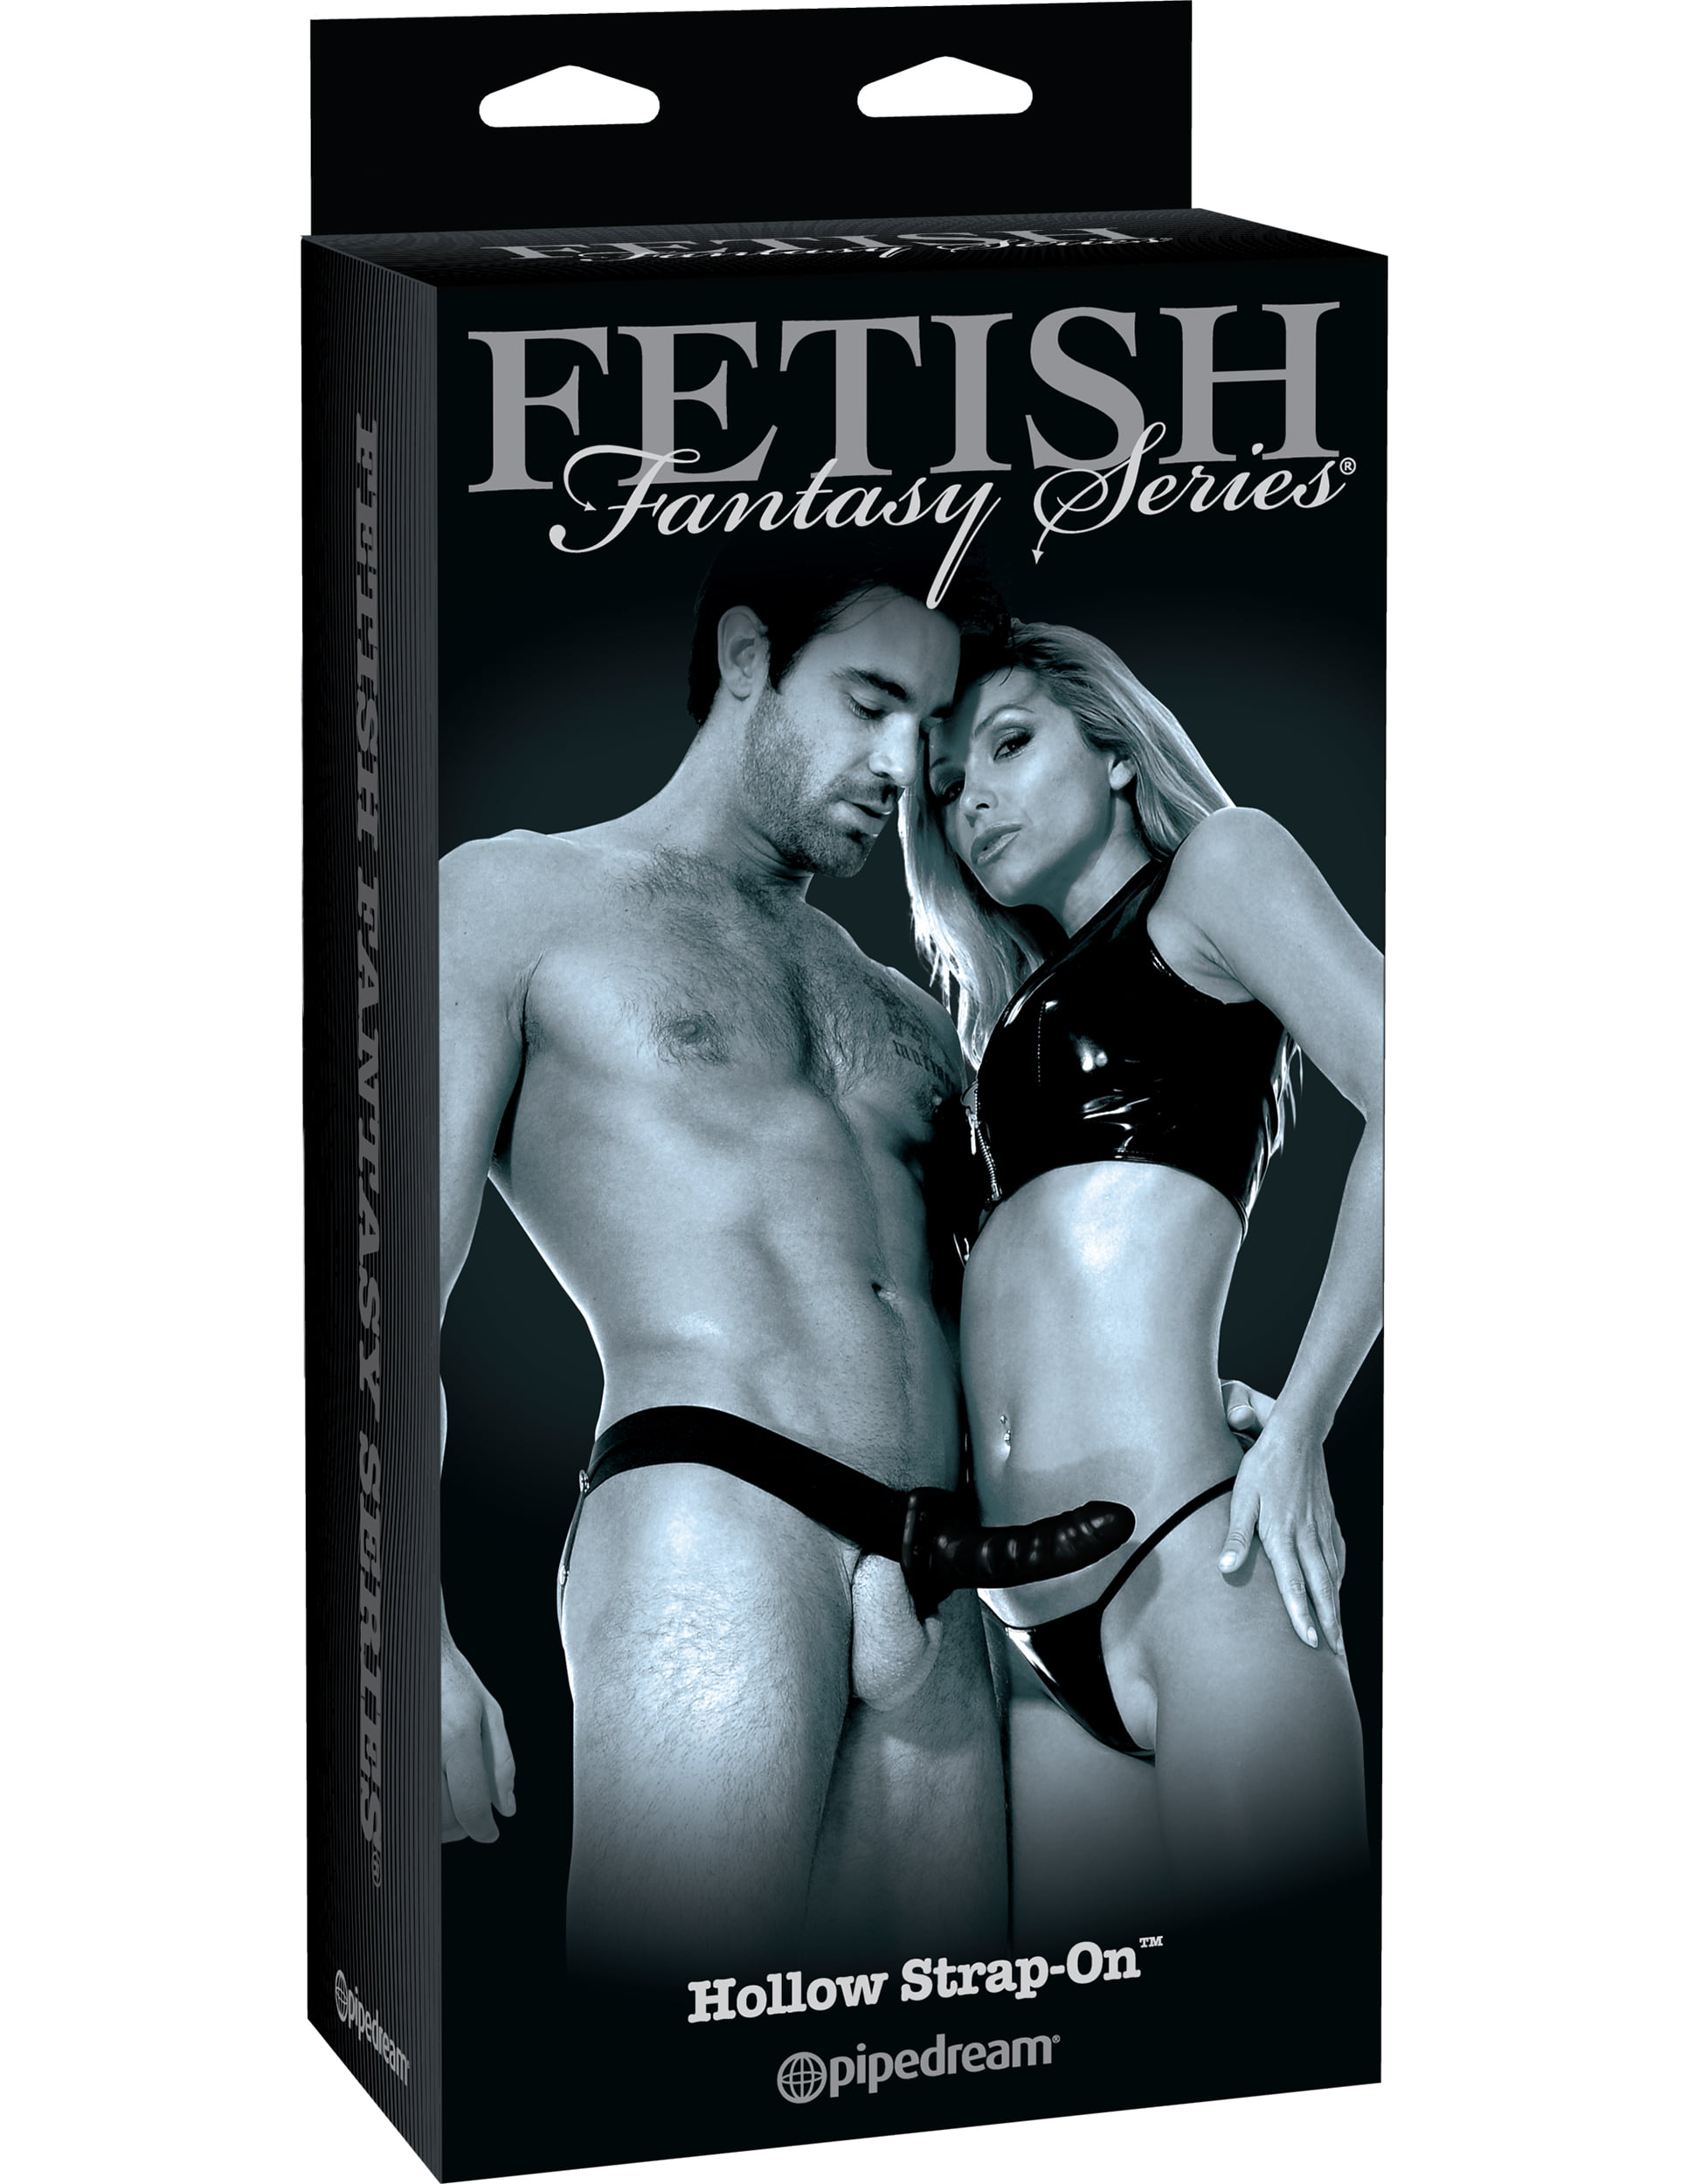 Capa Peniana Hollow Fantasy Series Fetish